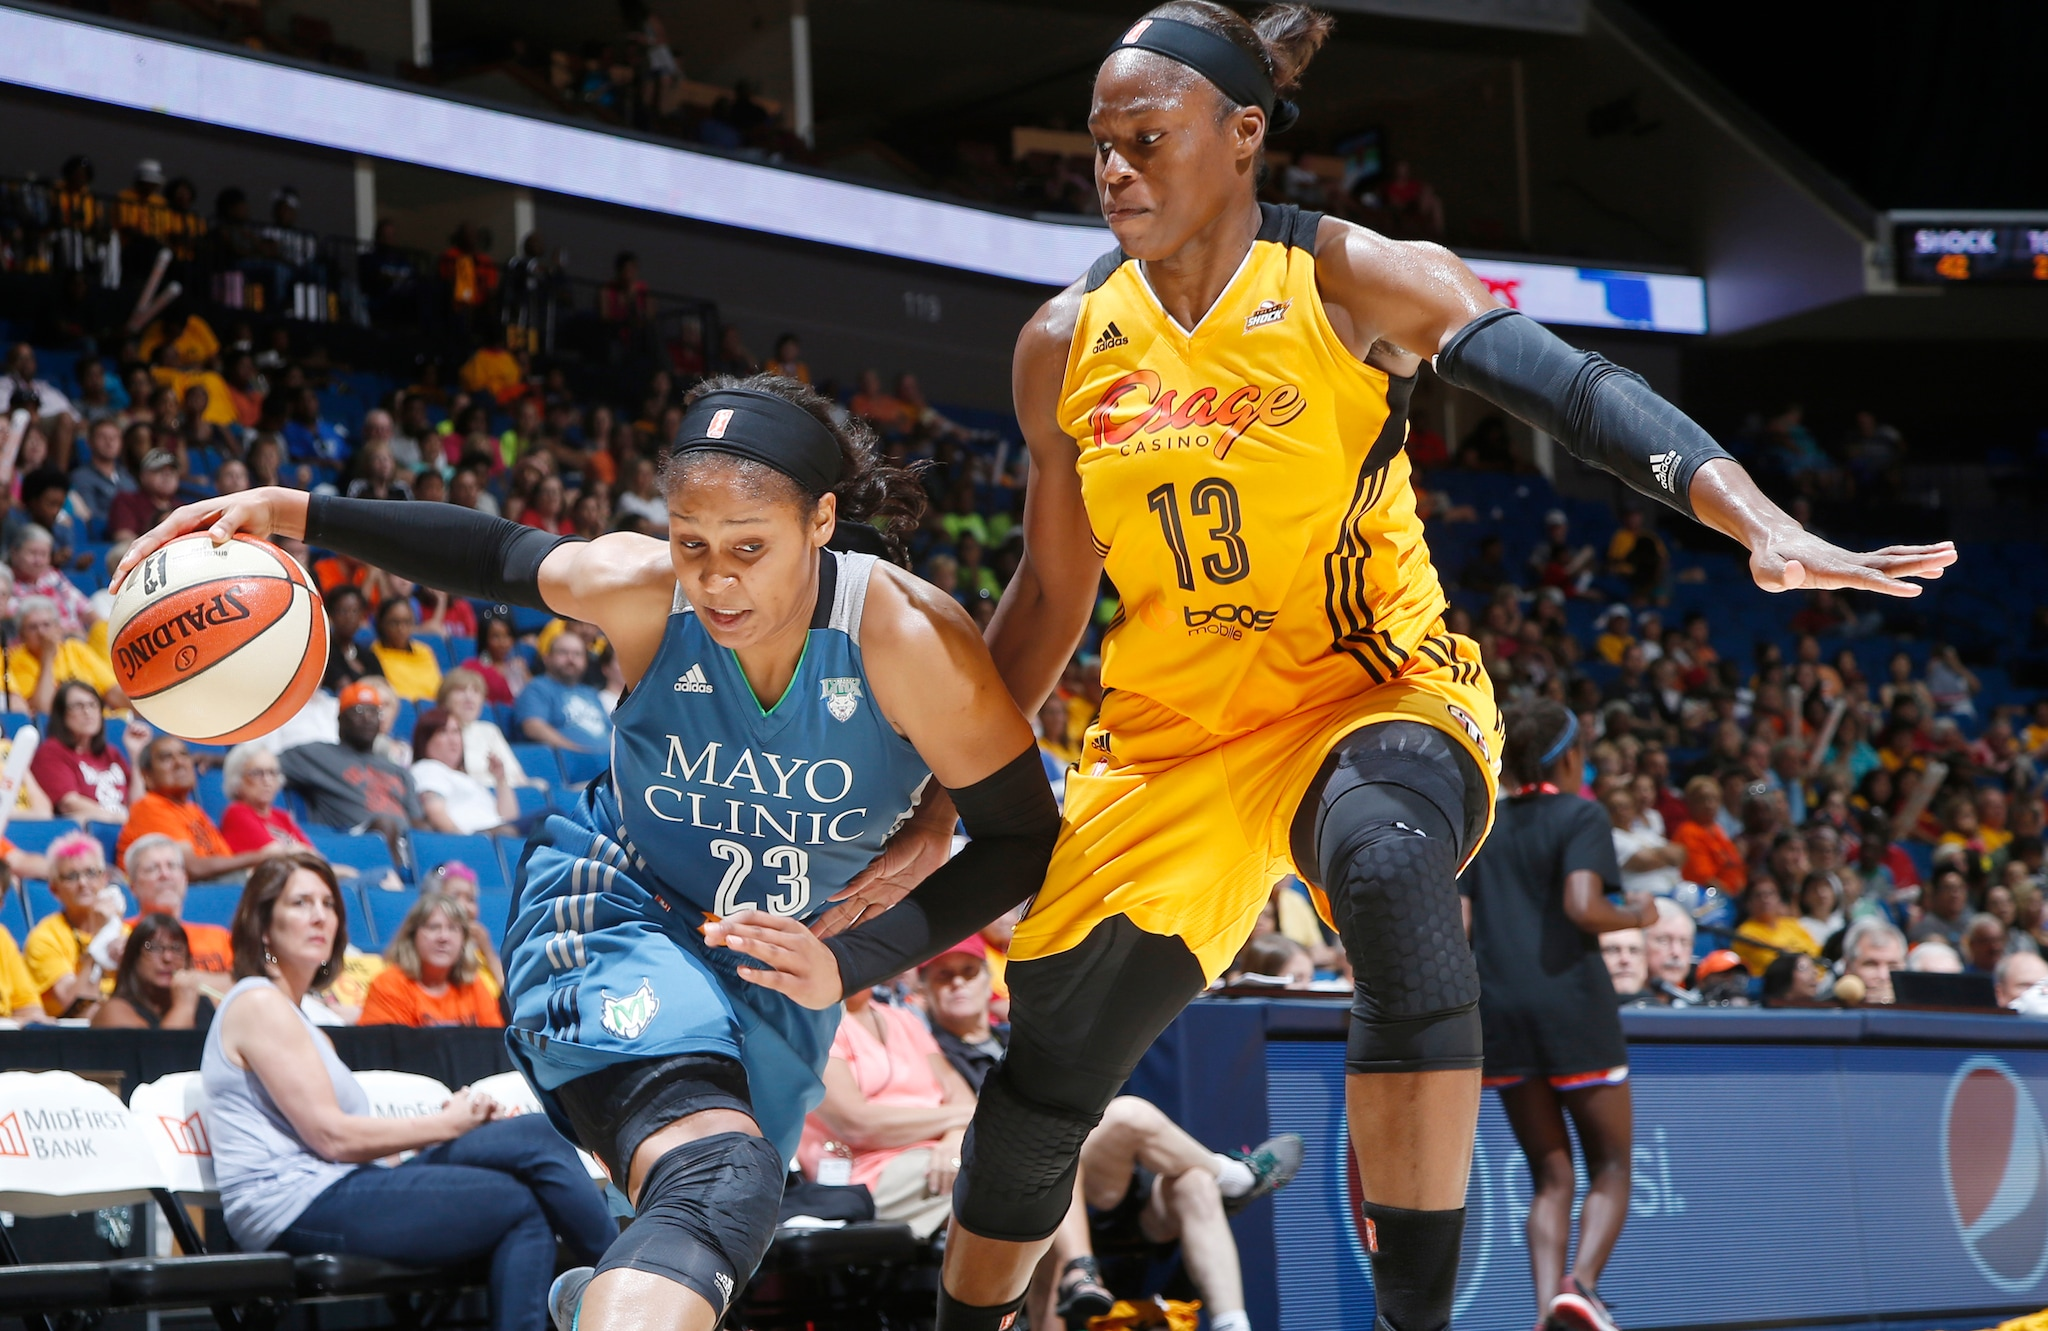 Despite being down seven points at the half,  Lynx forward Maya Moore scored 30 points in the second half to lead Minnesota to a 79-72 victory over the Tulsa Shock.